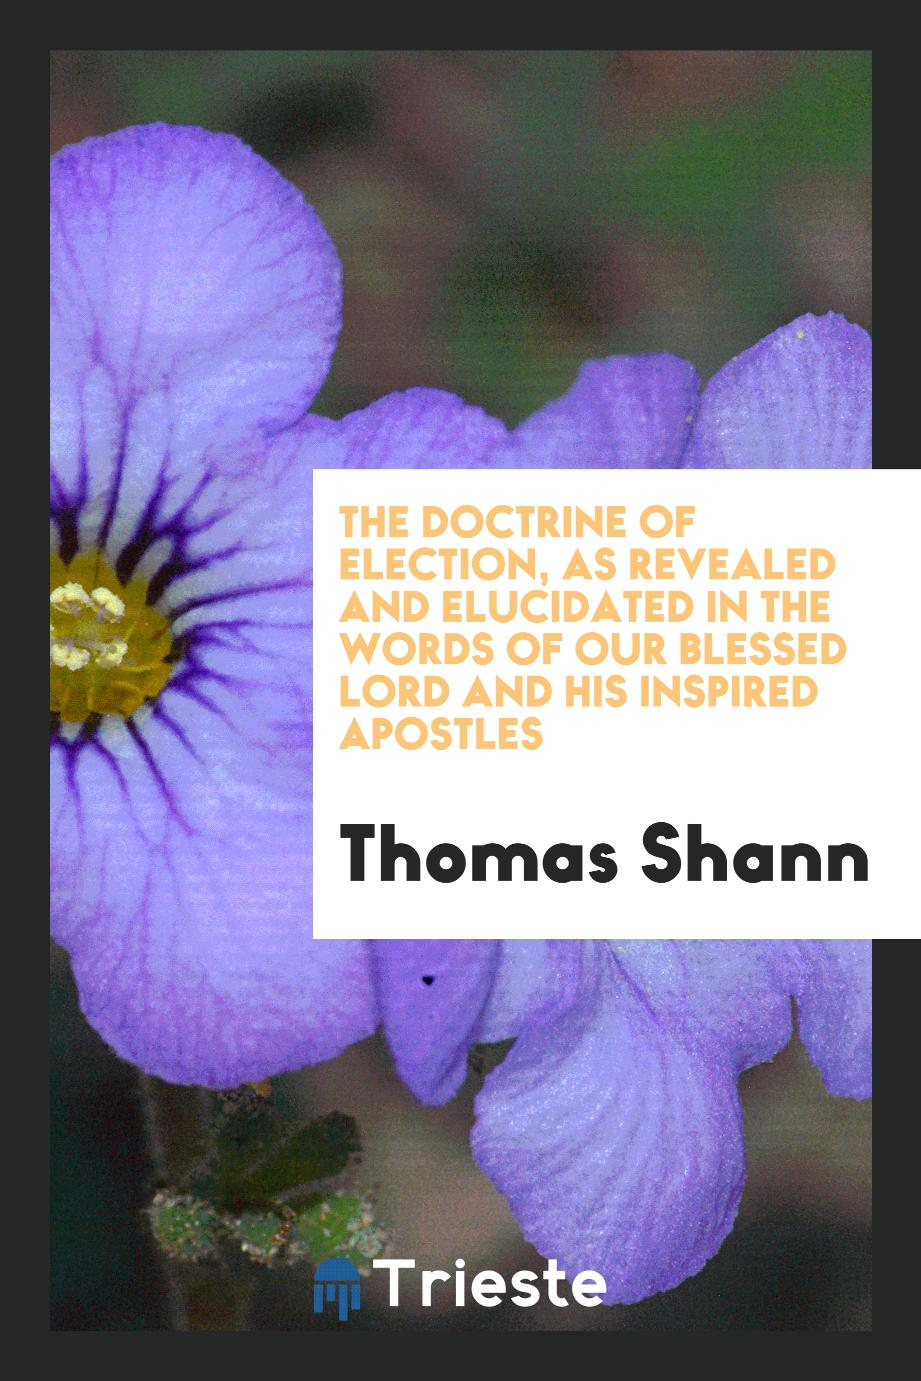 Thomas Shann - The Doctrine of Election, as Revealed and Elucidated in the Words of Our Blessed Lord and His Inspired Apostles